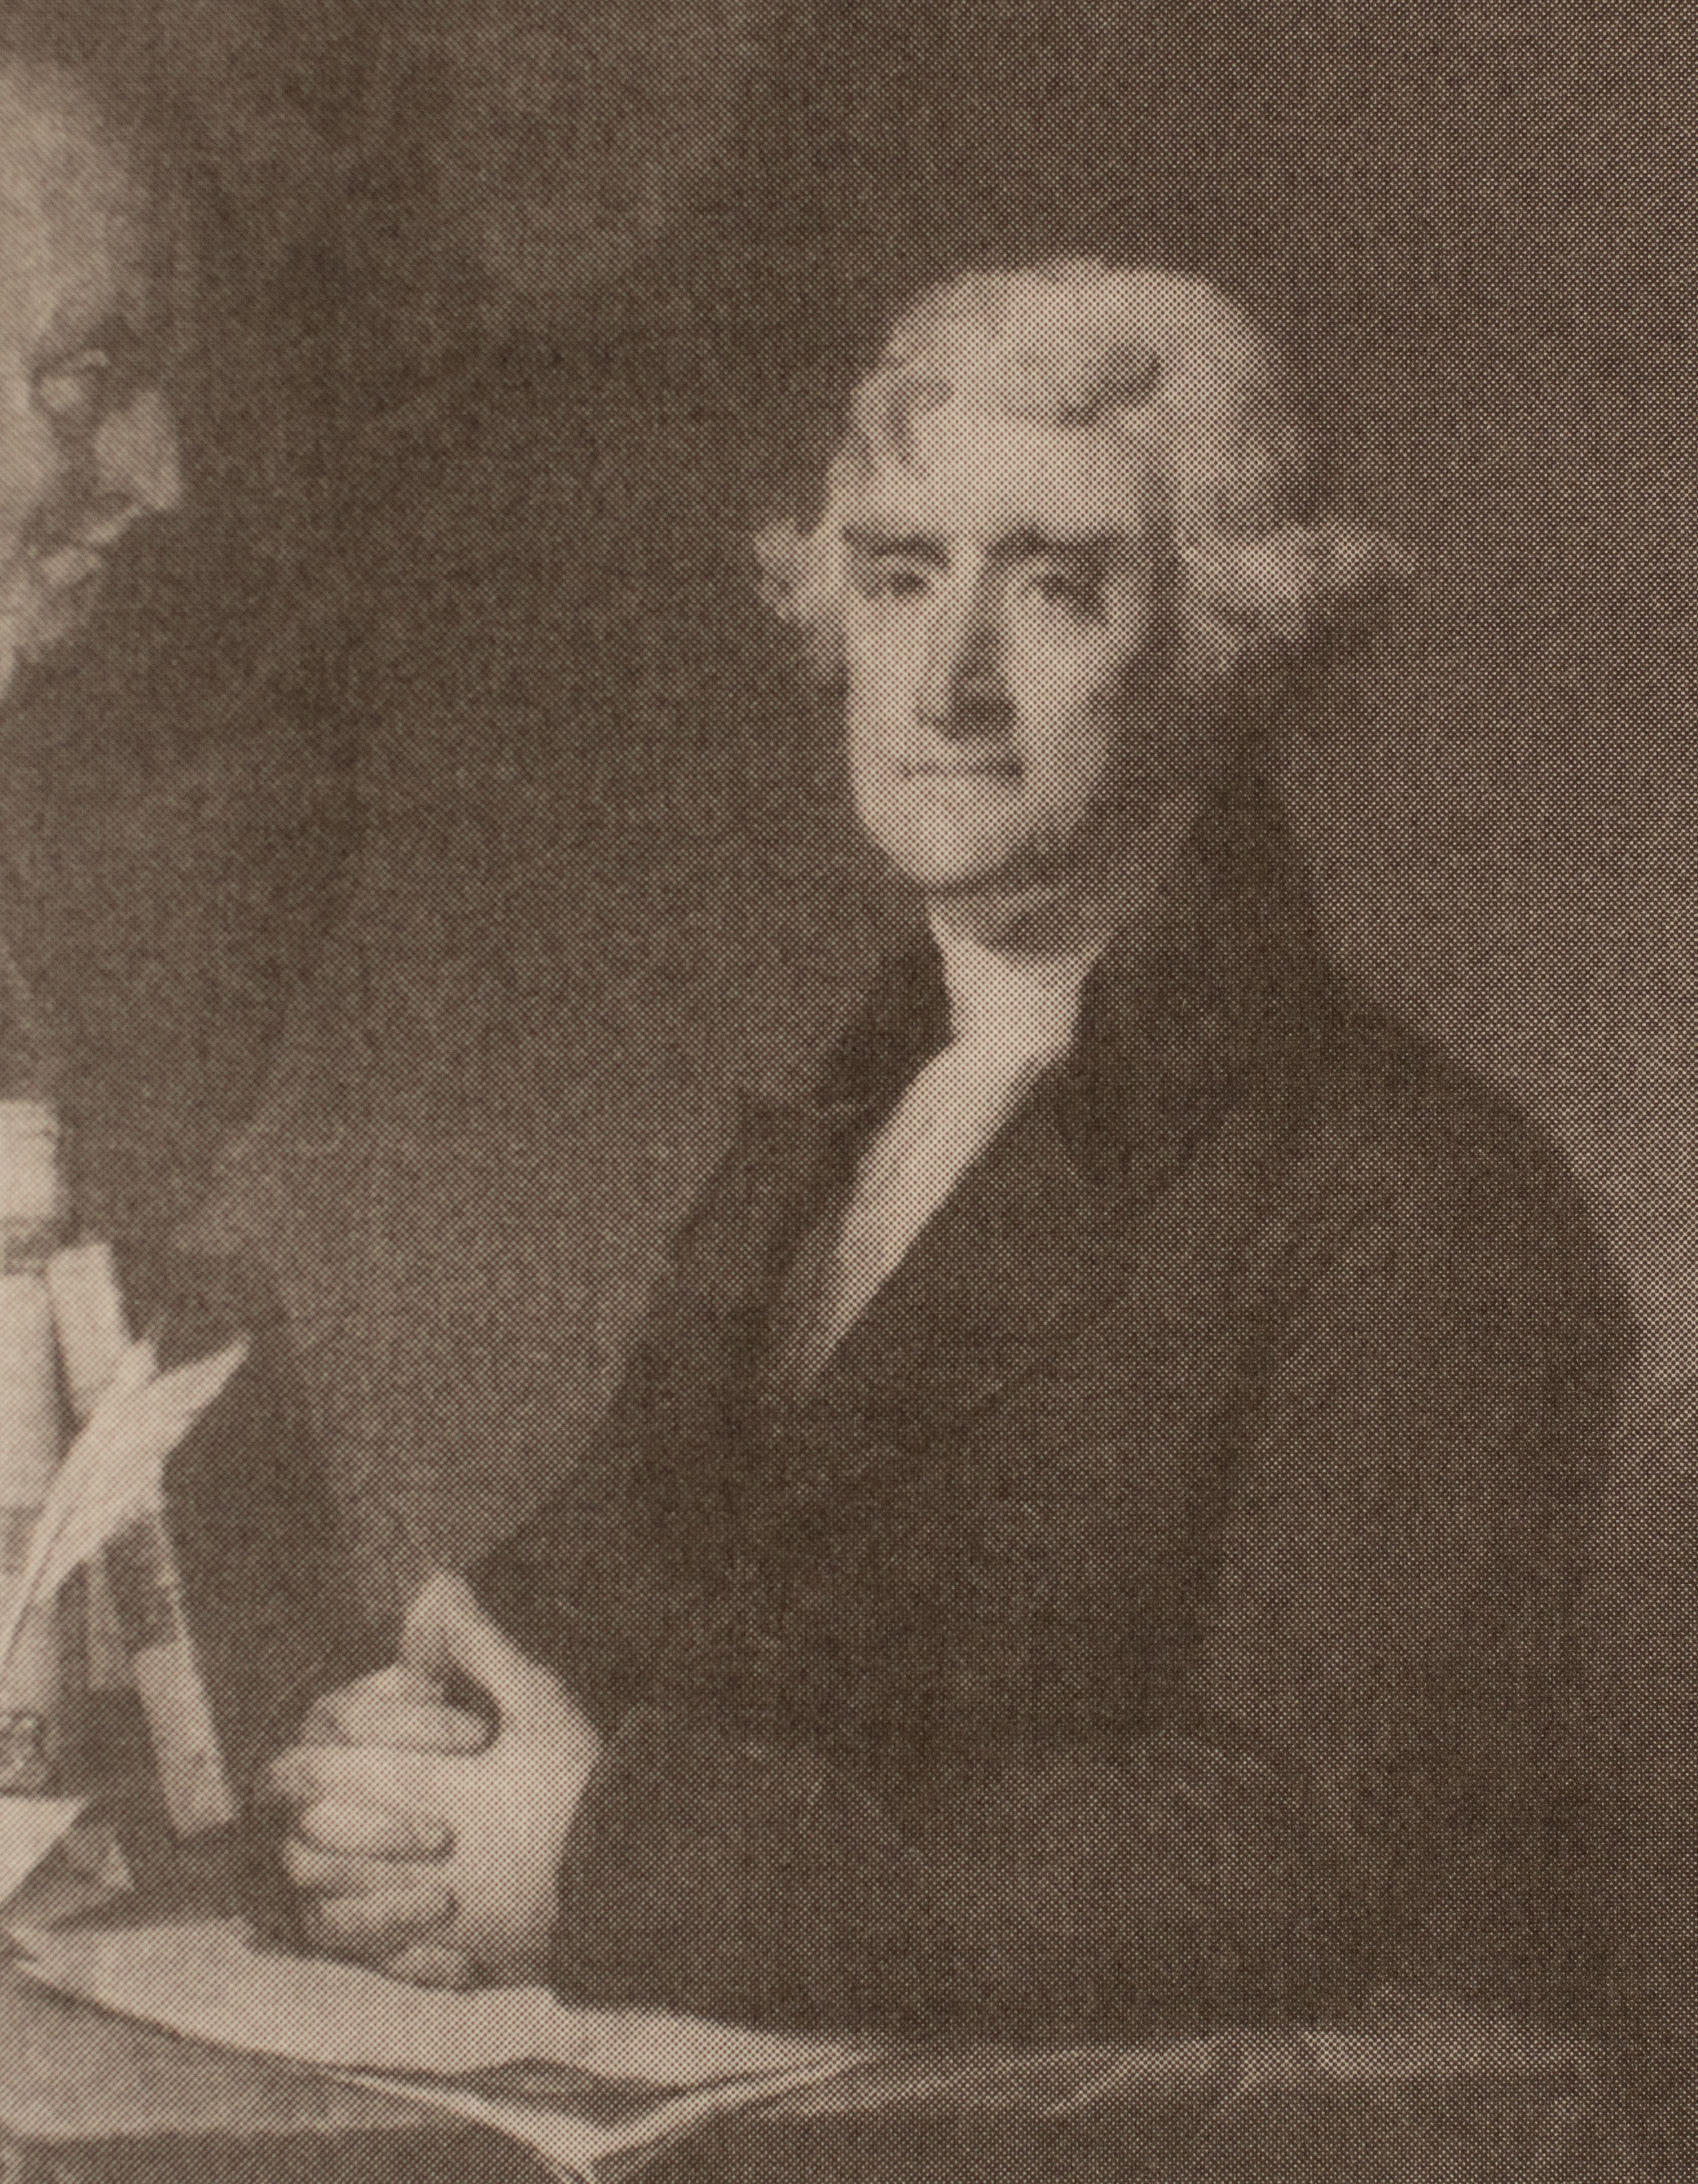 Image of President Jefferson